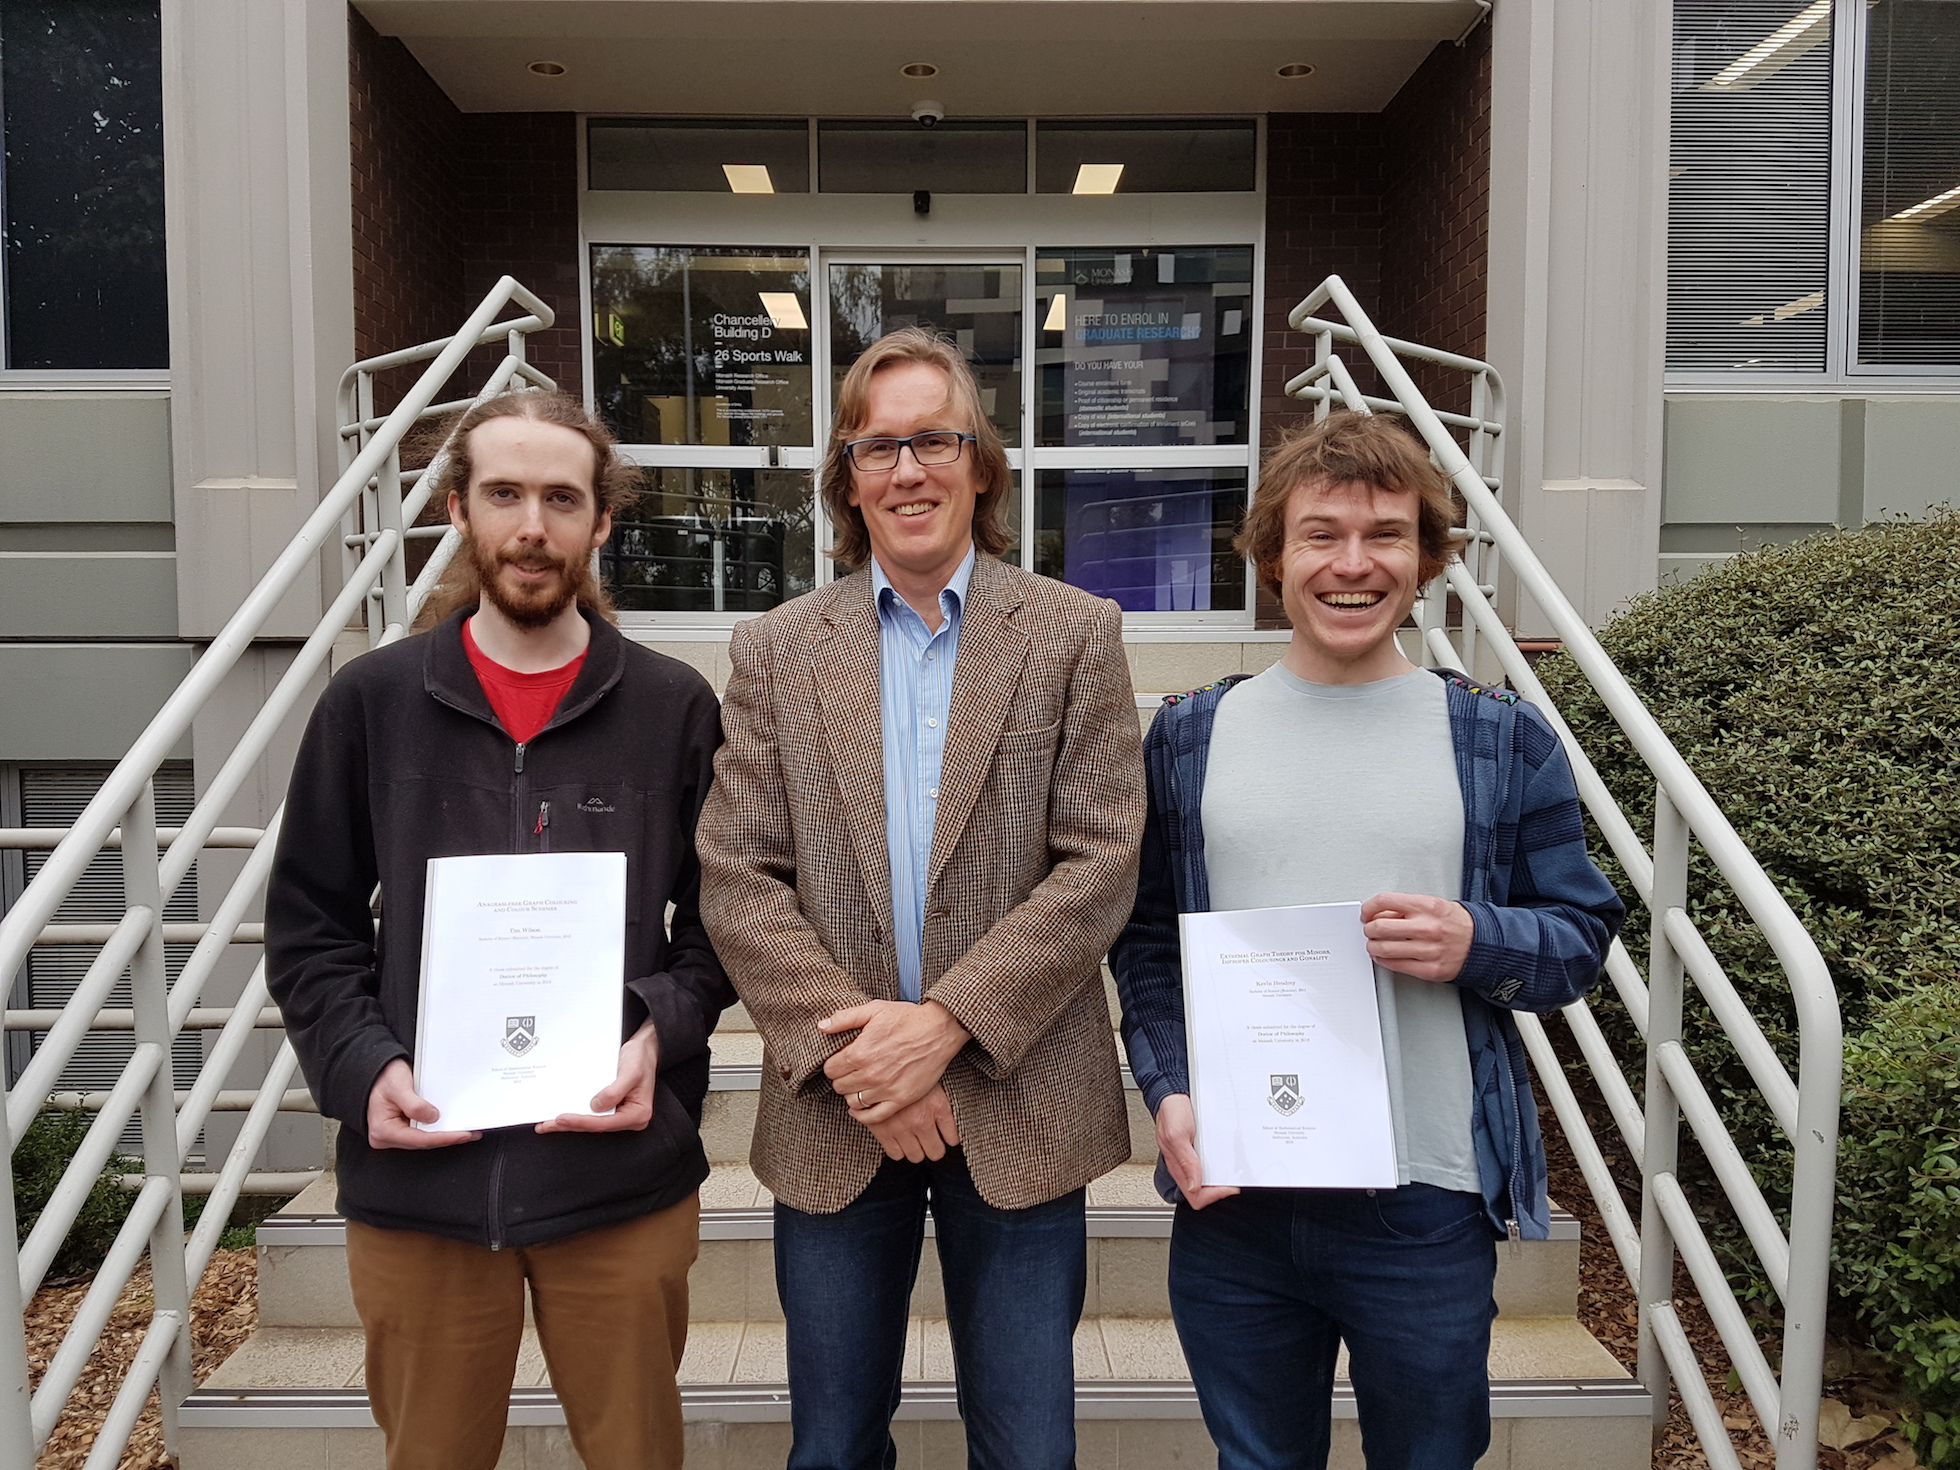 Tim Wilson and Kevin Hendrey submit their PhD theses